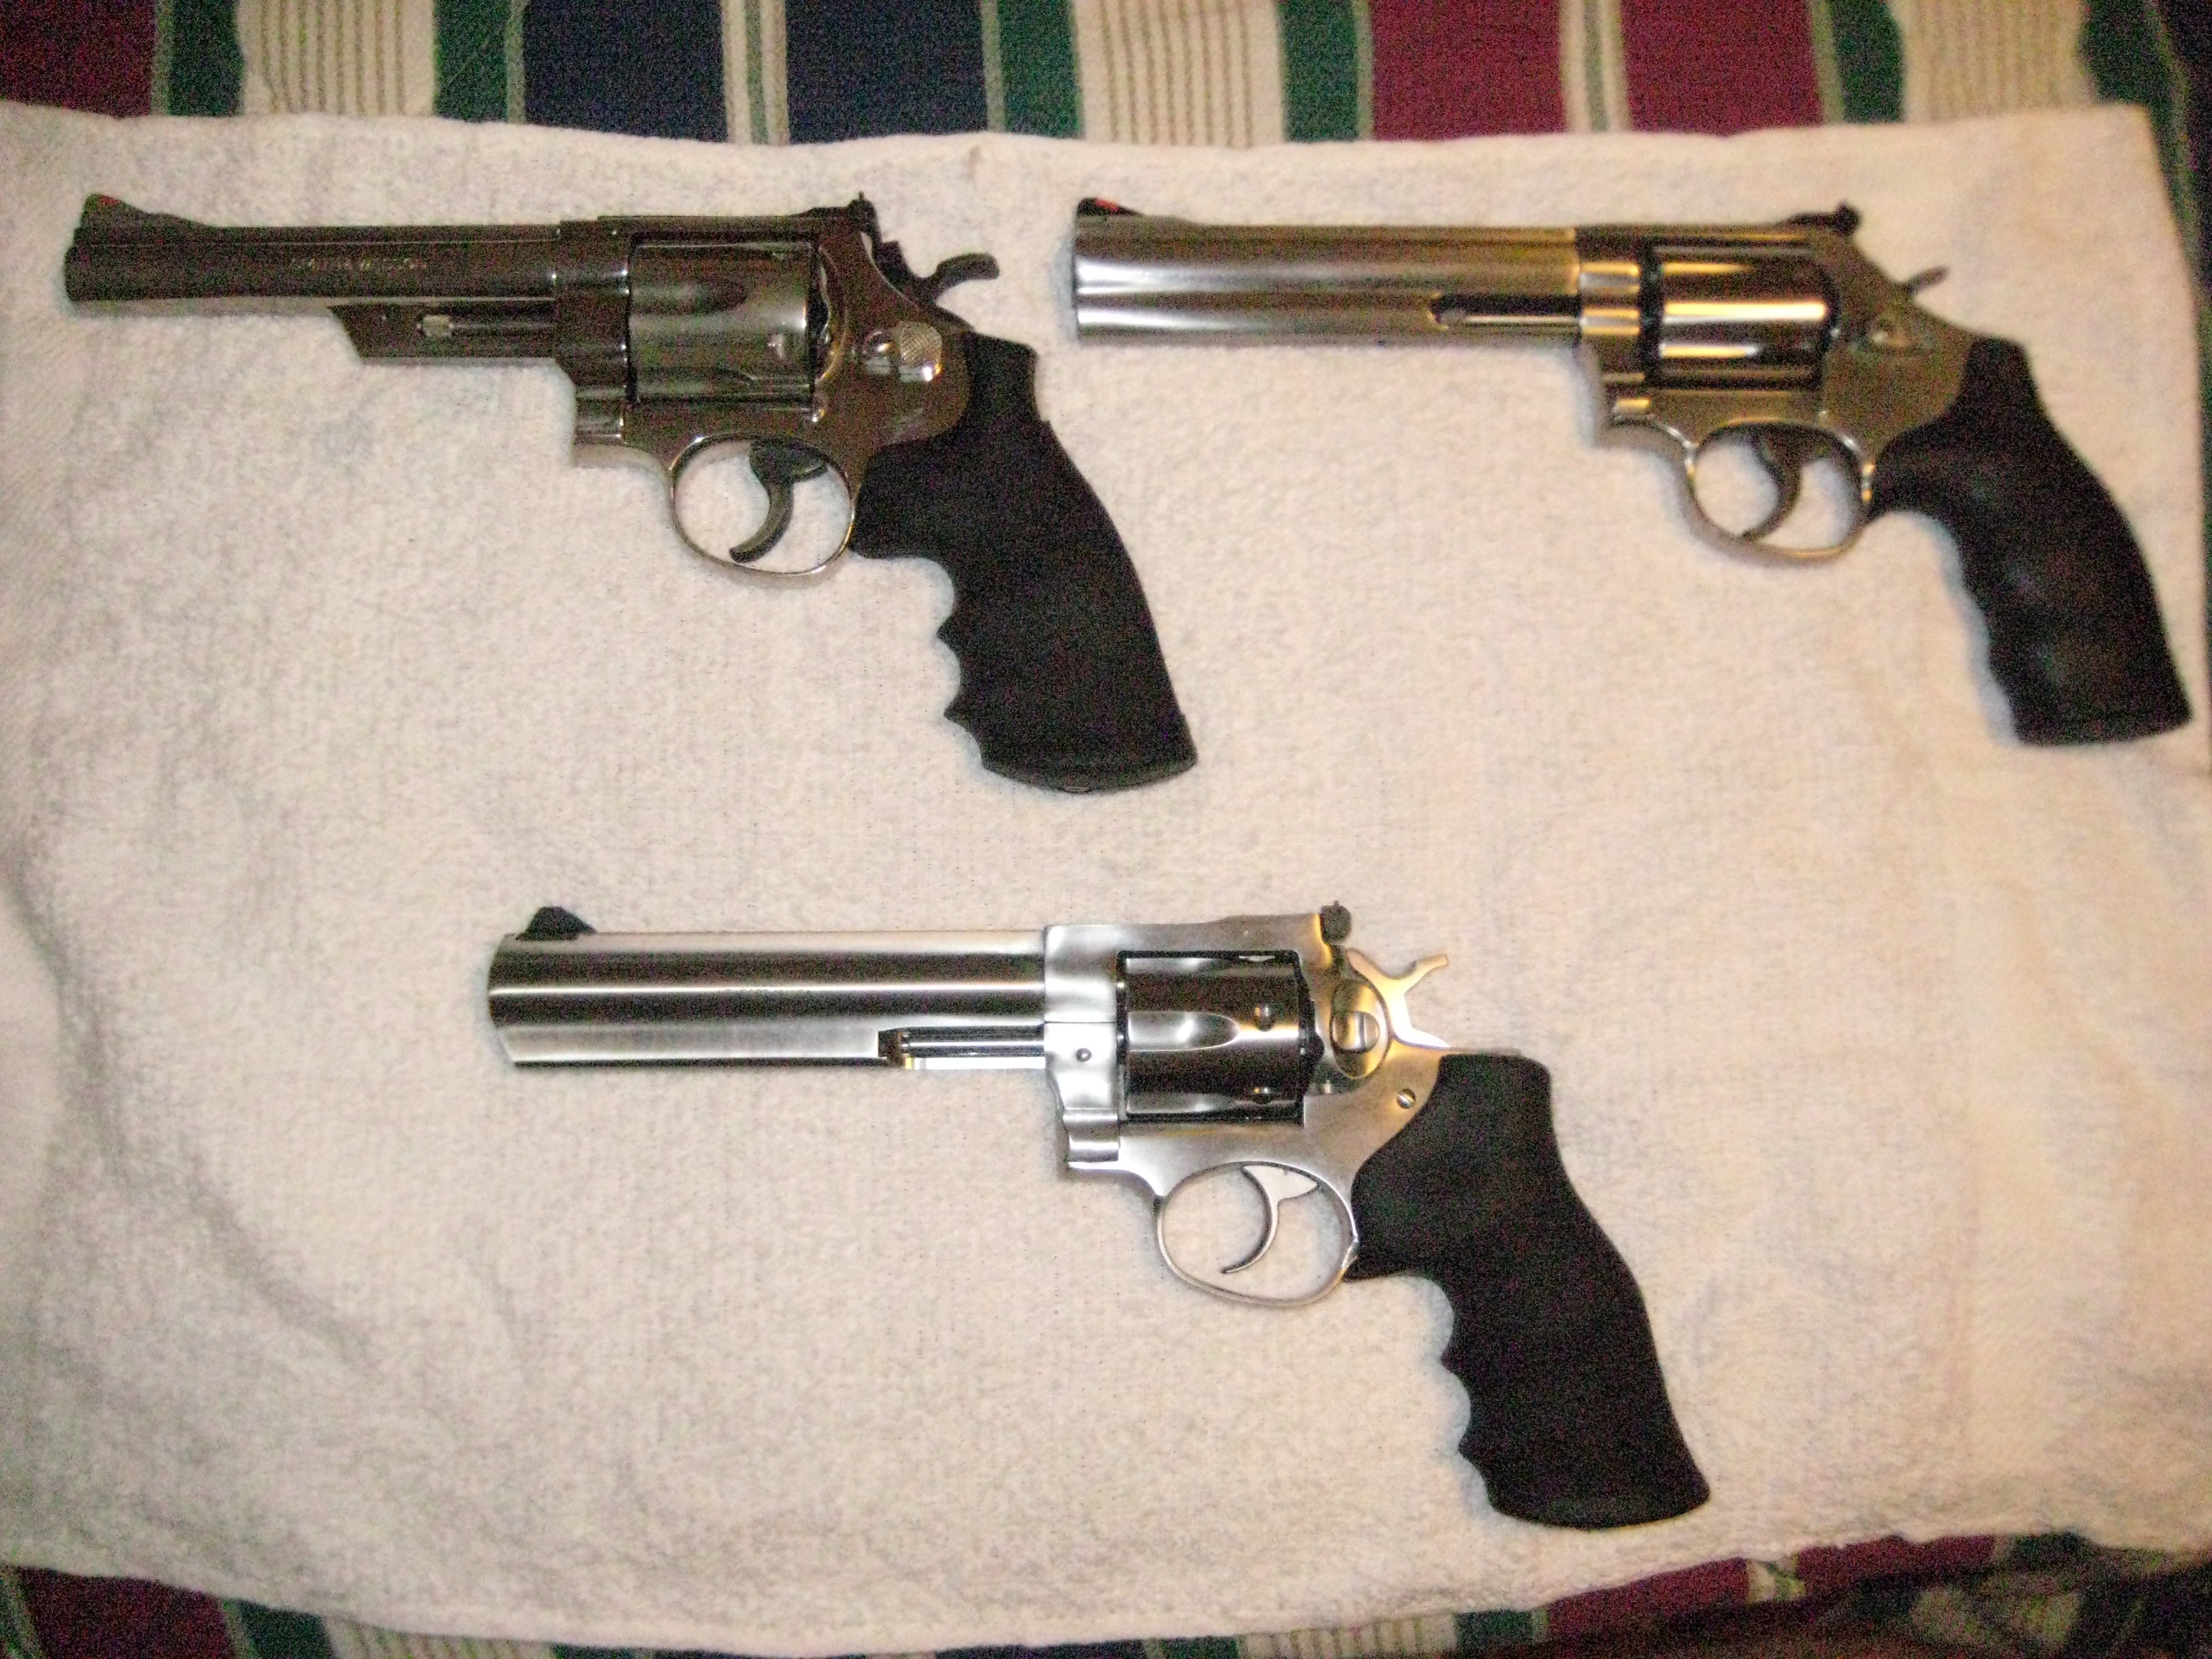 Finally a S&W 686-6 & a Ruger Gp-100